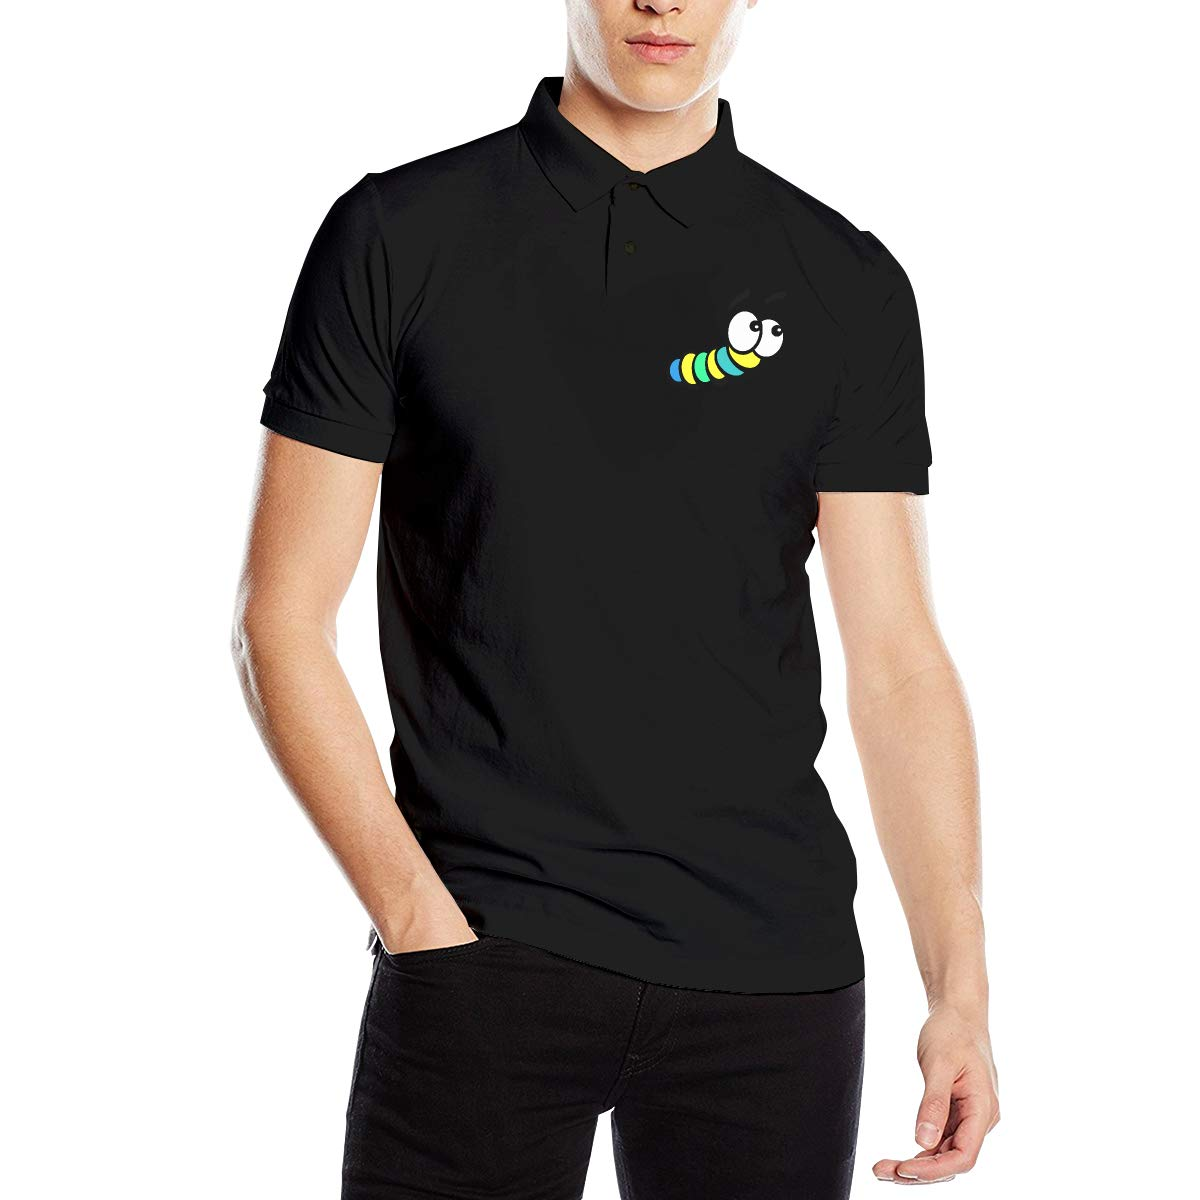 Allison Polly Caterpillar Mens Classic Short Sleeve Solid Color Soft Cotton Polo Sports Shirt Black